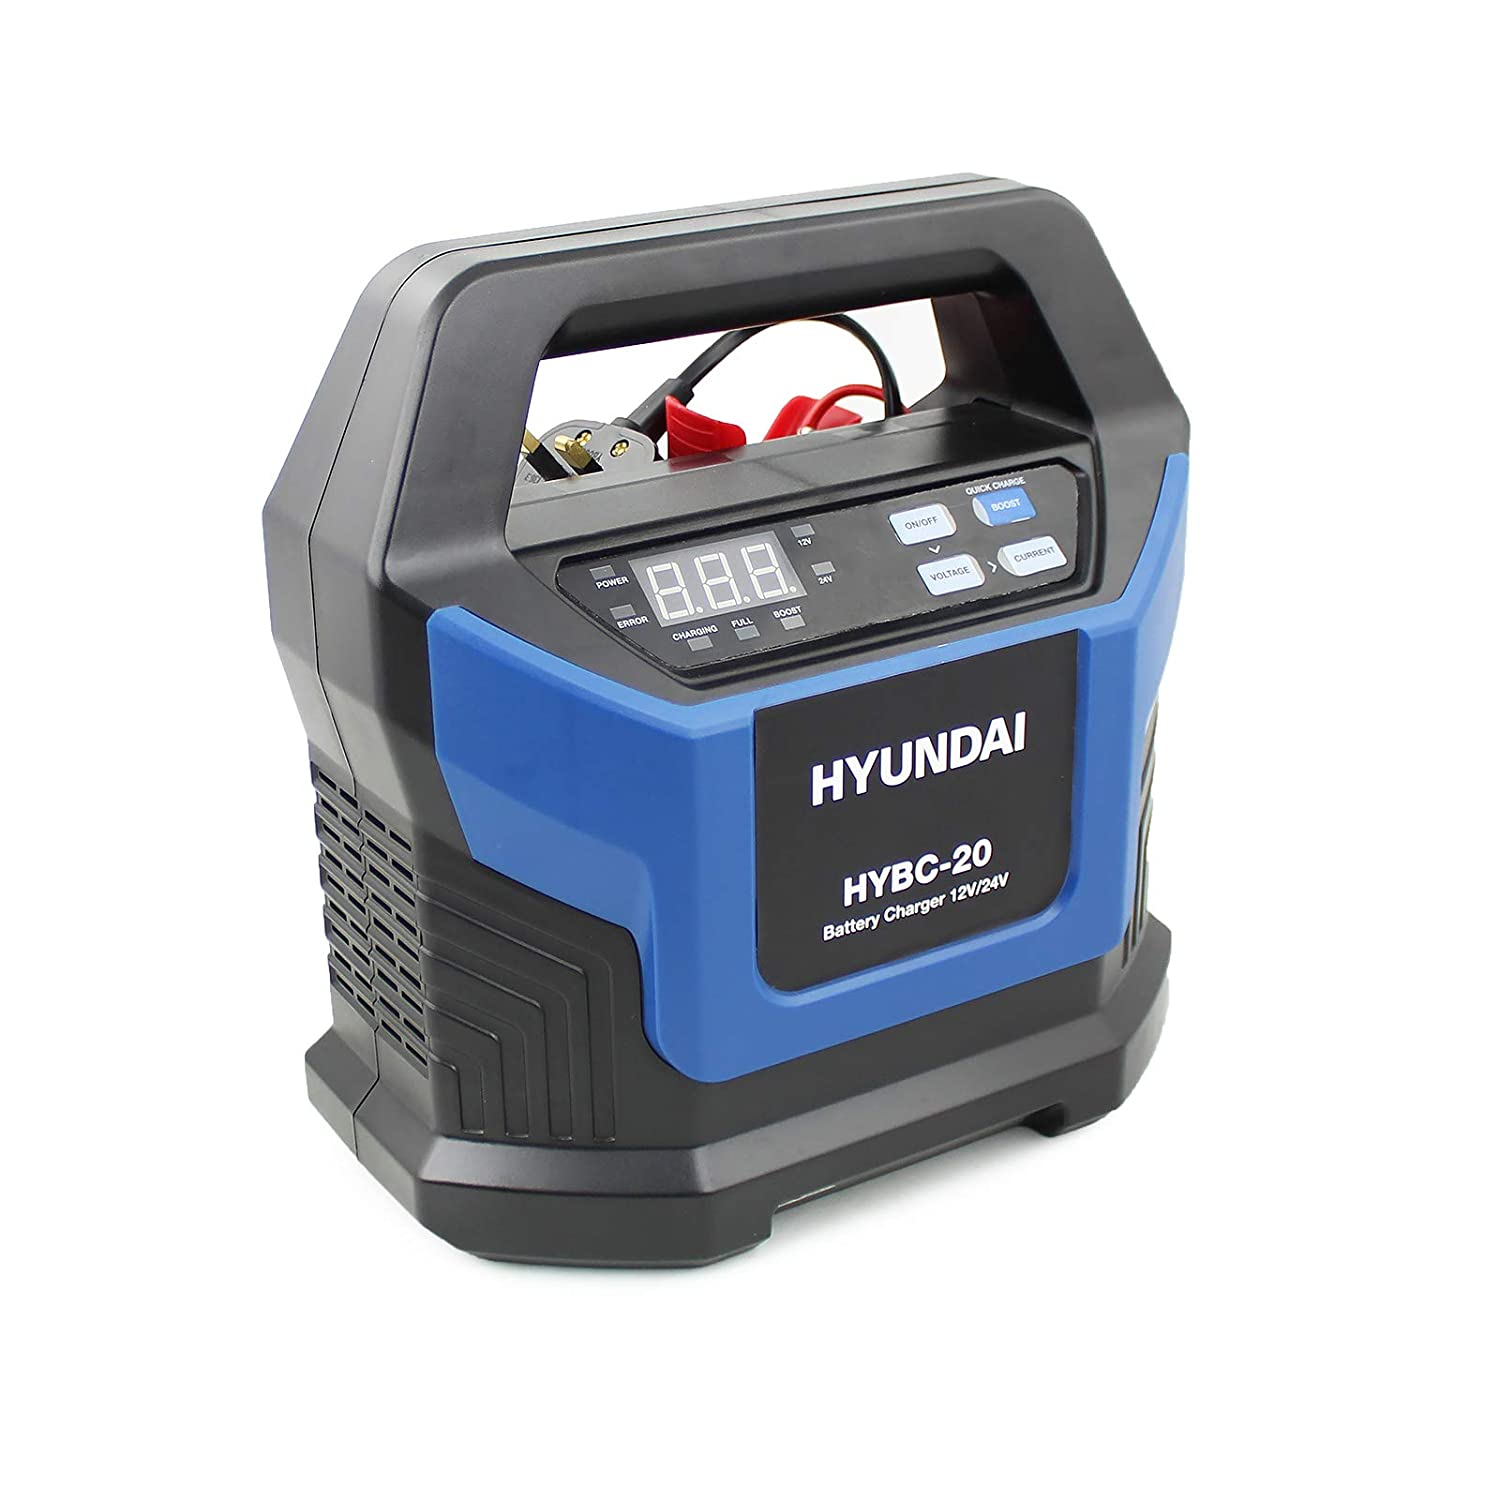 Hyundai HYBC-20 Battery Boost Charger 12v & 24v